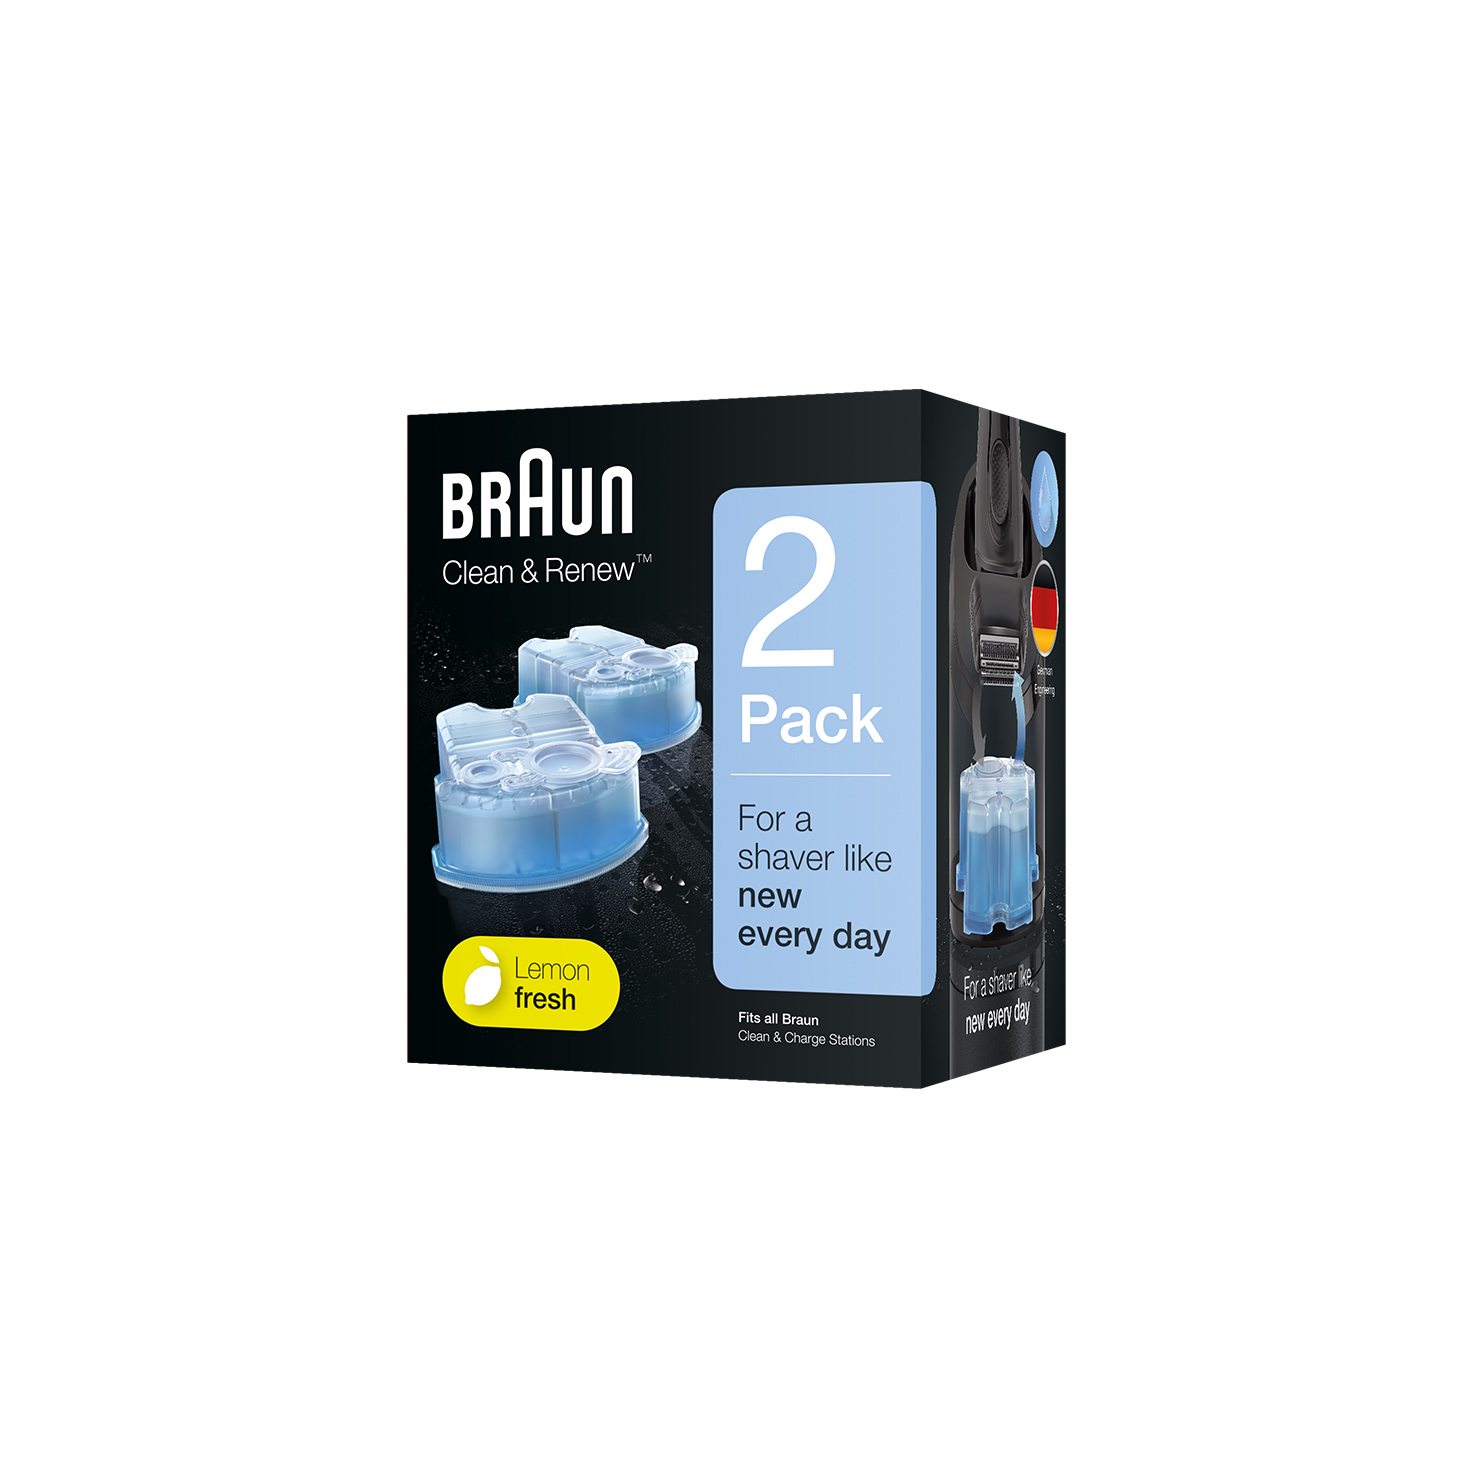 Braun Clean & Renew refill cartridges  CCR - 2 Pack